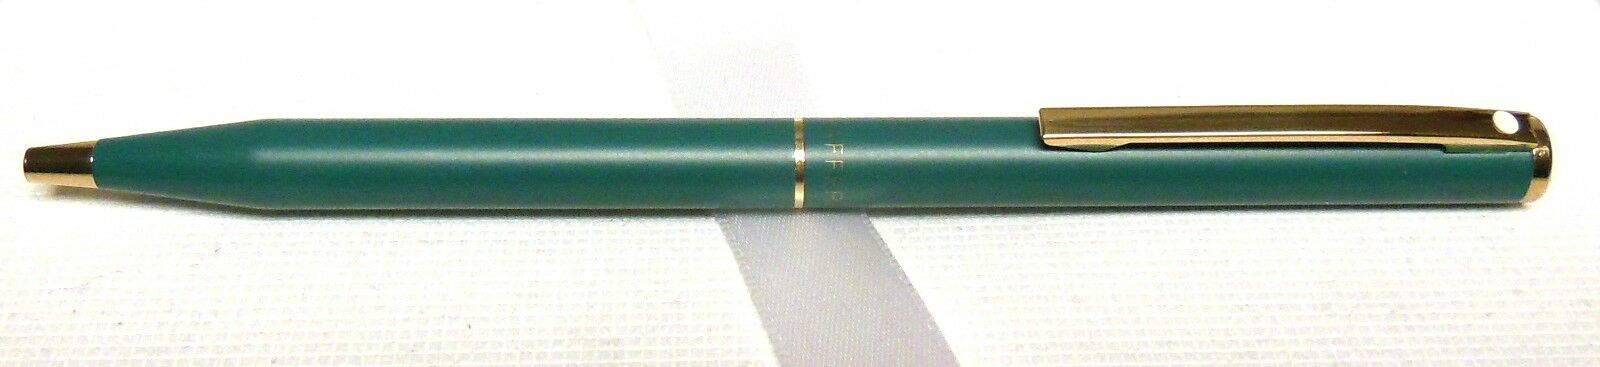 Sheaffer Fashion Ballpoint Pen, Vintage Green & Gold, Brand New, USA MADE